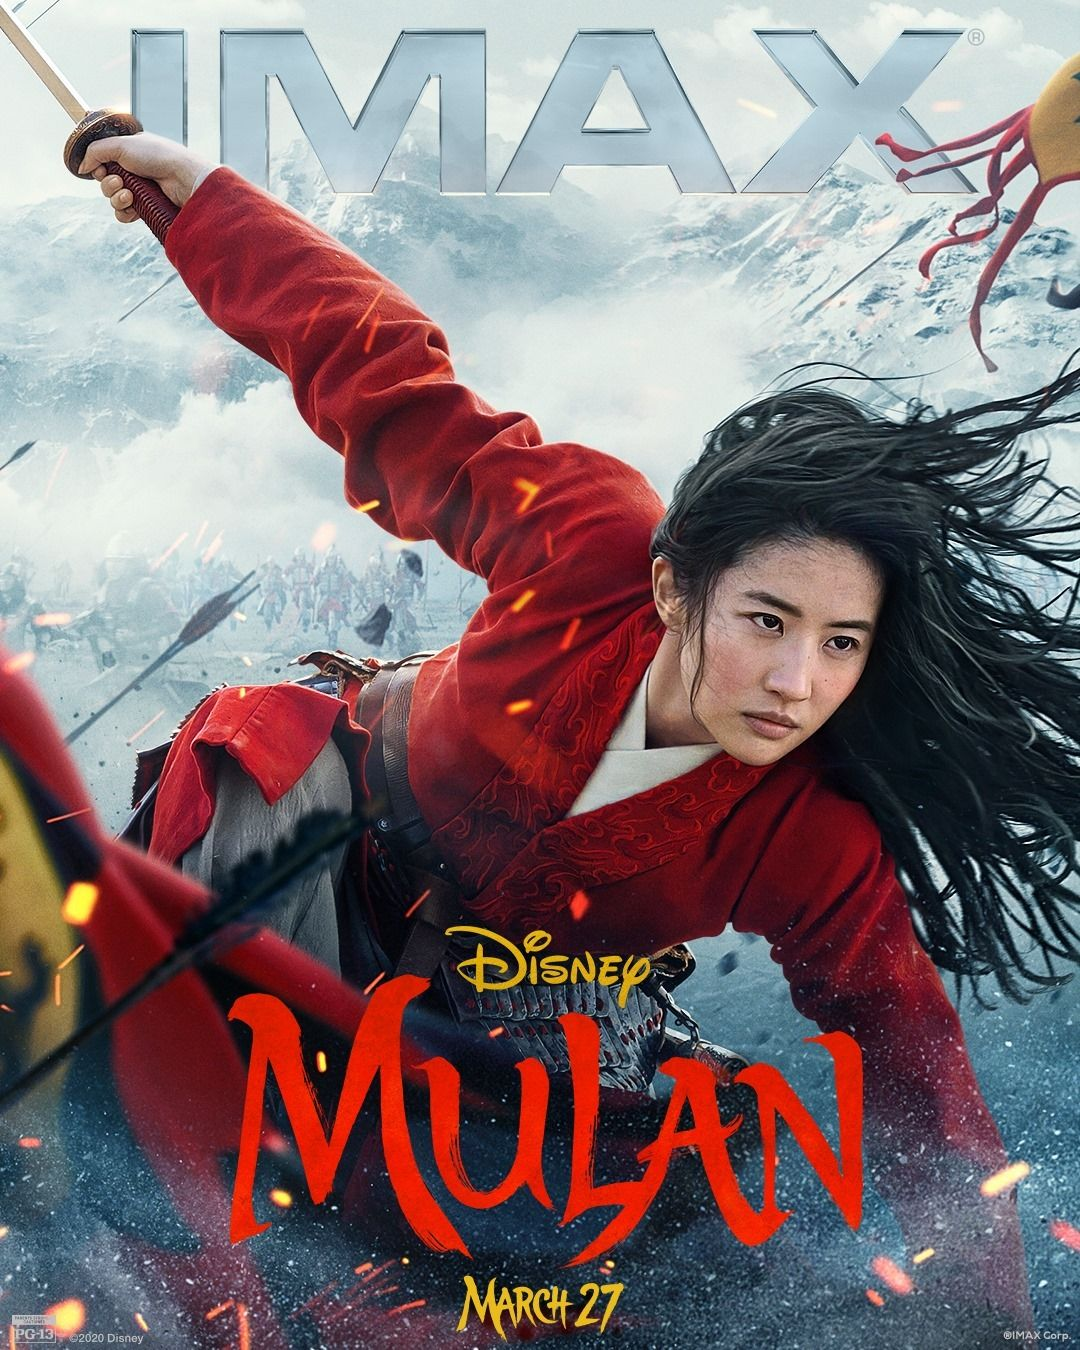 Return to the main poster page for Mulan (20 of 21) in